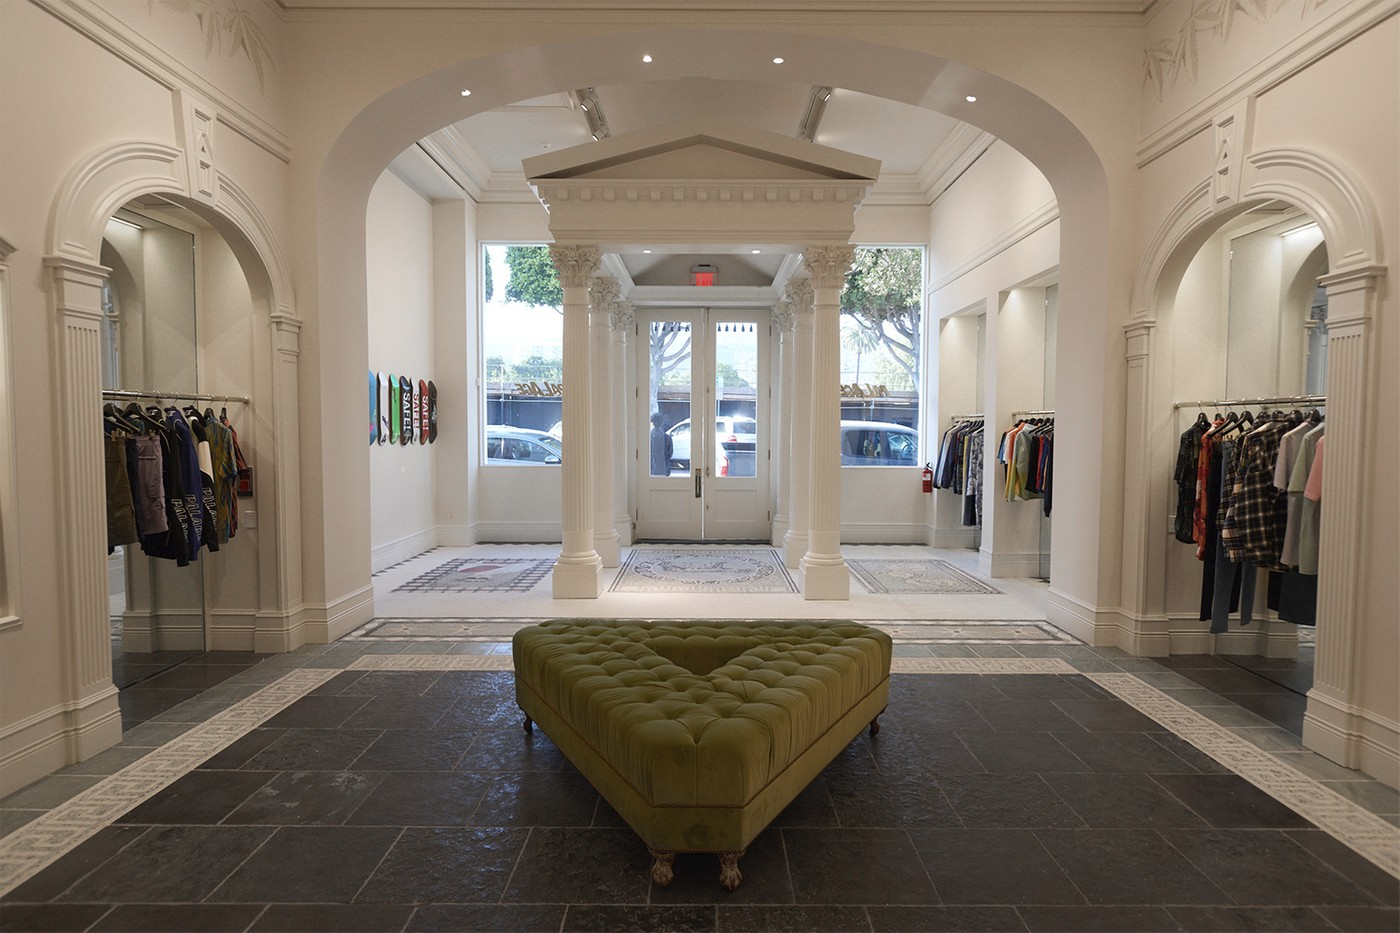 https---hypebeast.com-image-2019-04-palace-los-angeles-flagship-inside-look-05.jpg